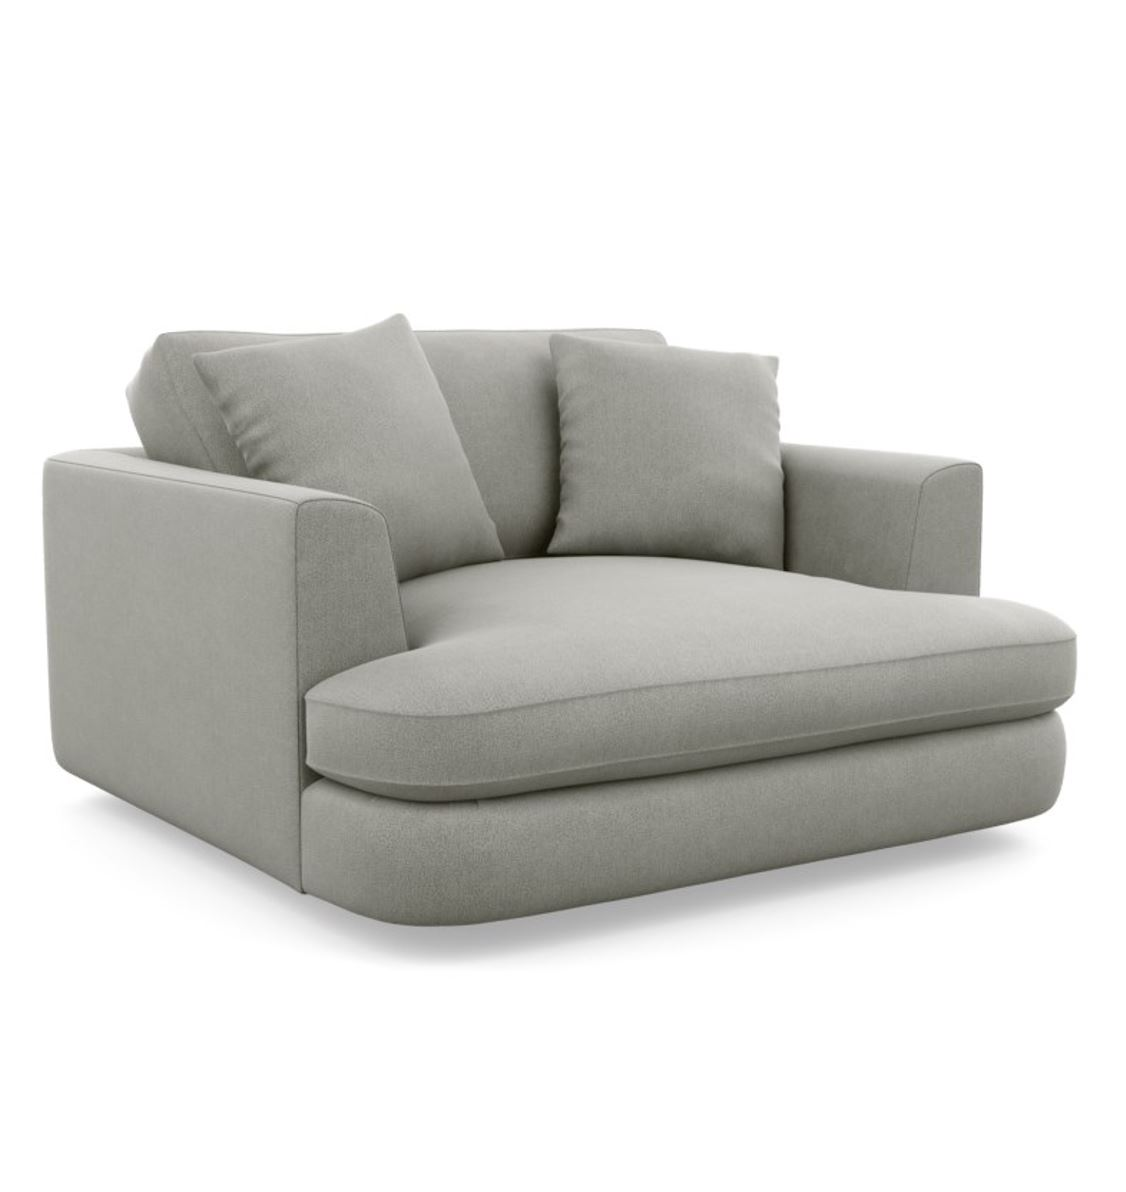 Napa Swivel Chair by Plush Think Sofas, a Chairs for sale on Style Sourcebook